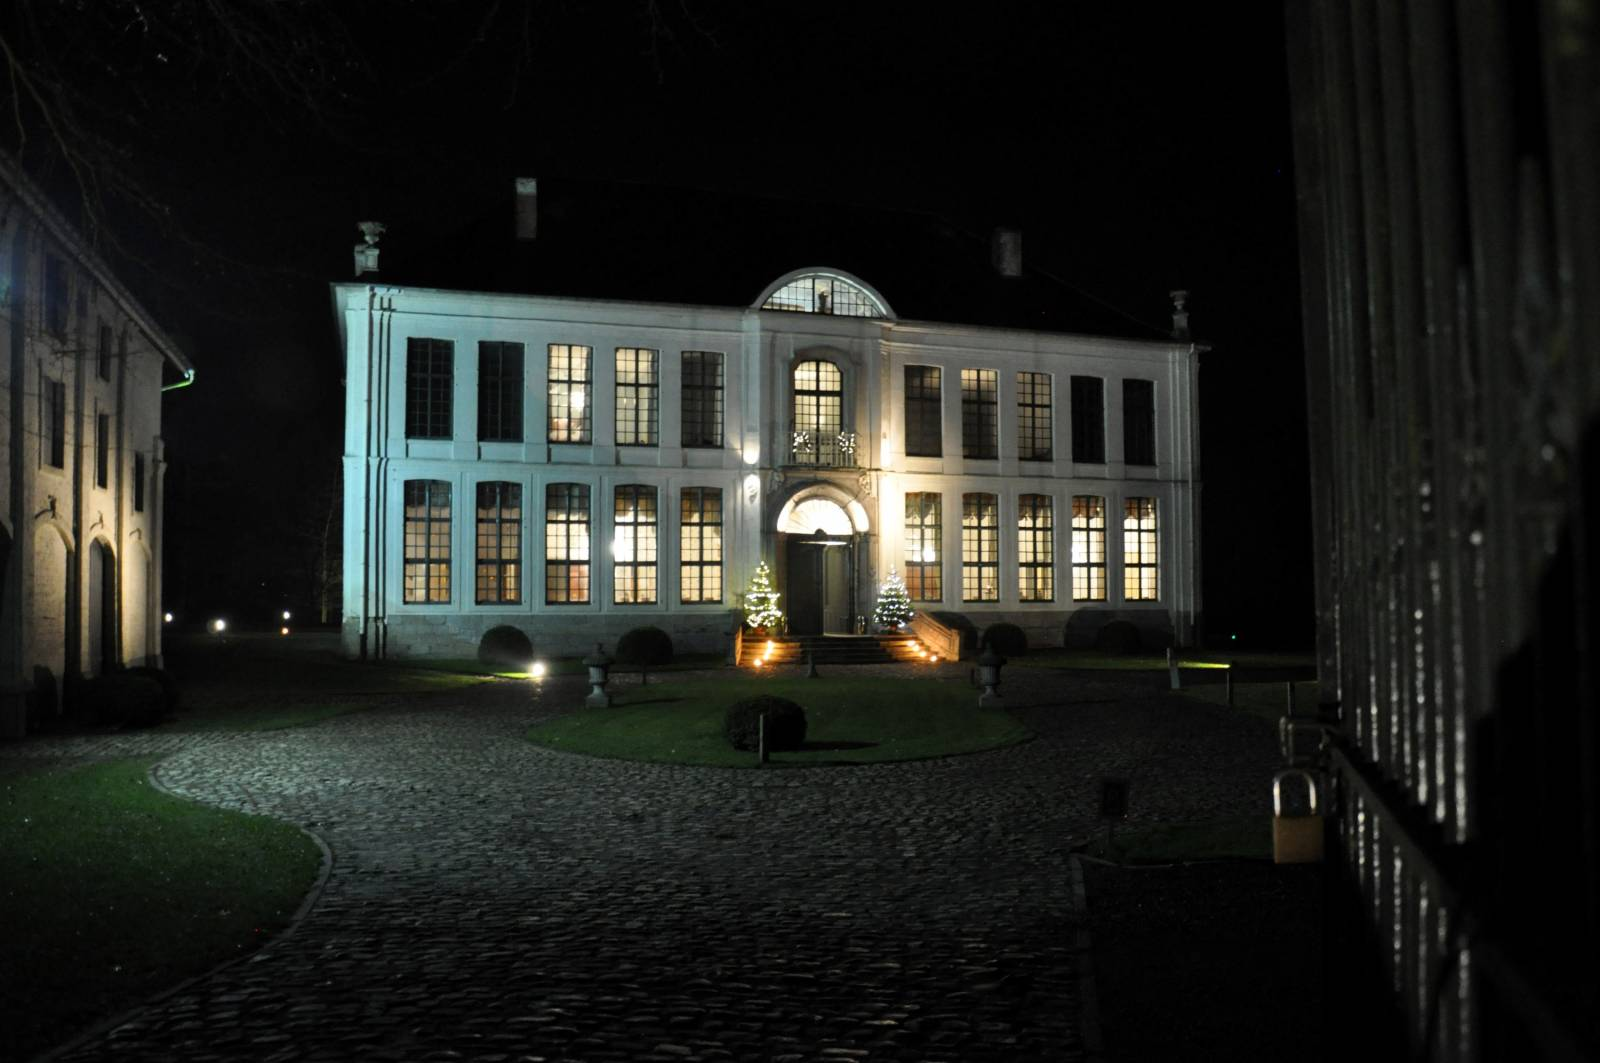 House of Weddings Kasteel Te Lake Feestzaal Oost-Vlaanderen Catering Ceremonie Zulte Gent (9)